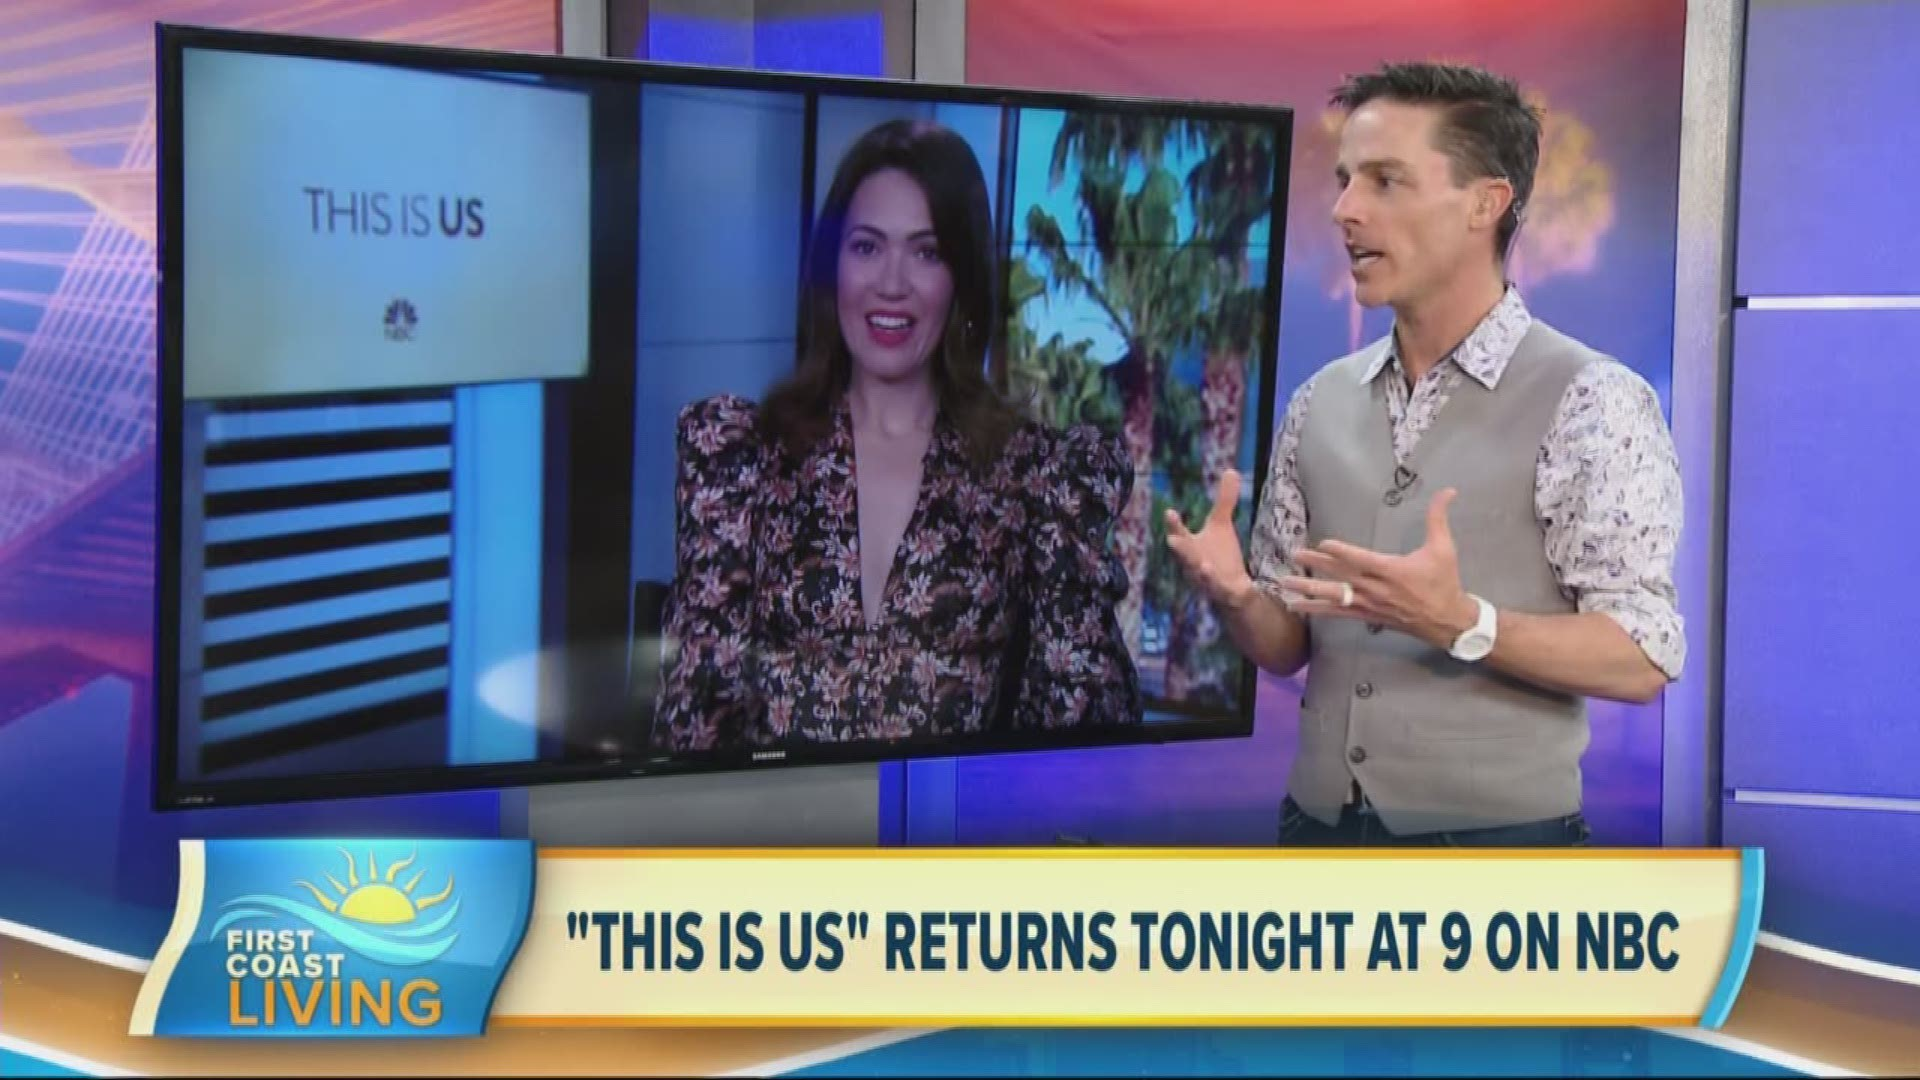 This Is Us Returns Tonight At 9 On Nbc Fcl March 10th 2020 Firstcoastnews Com